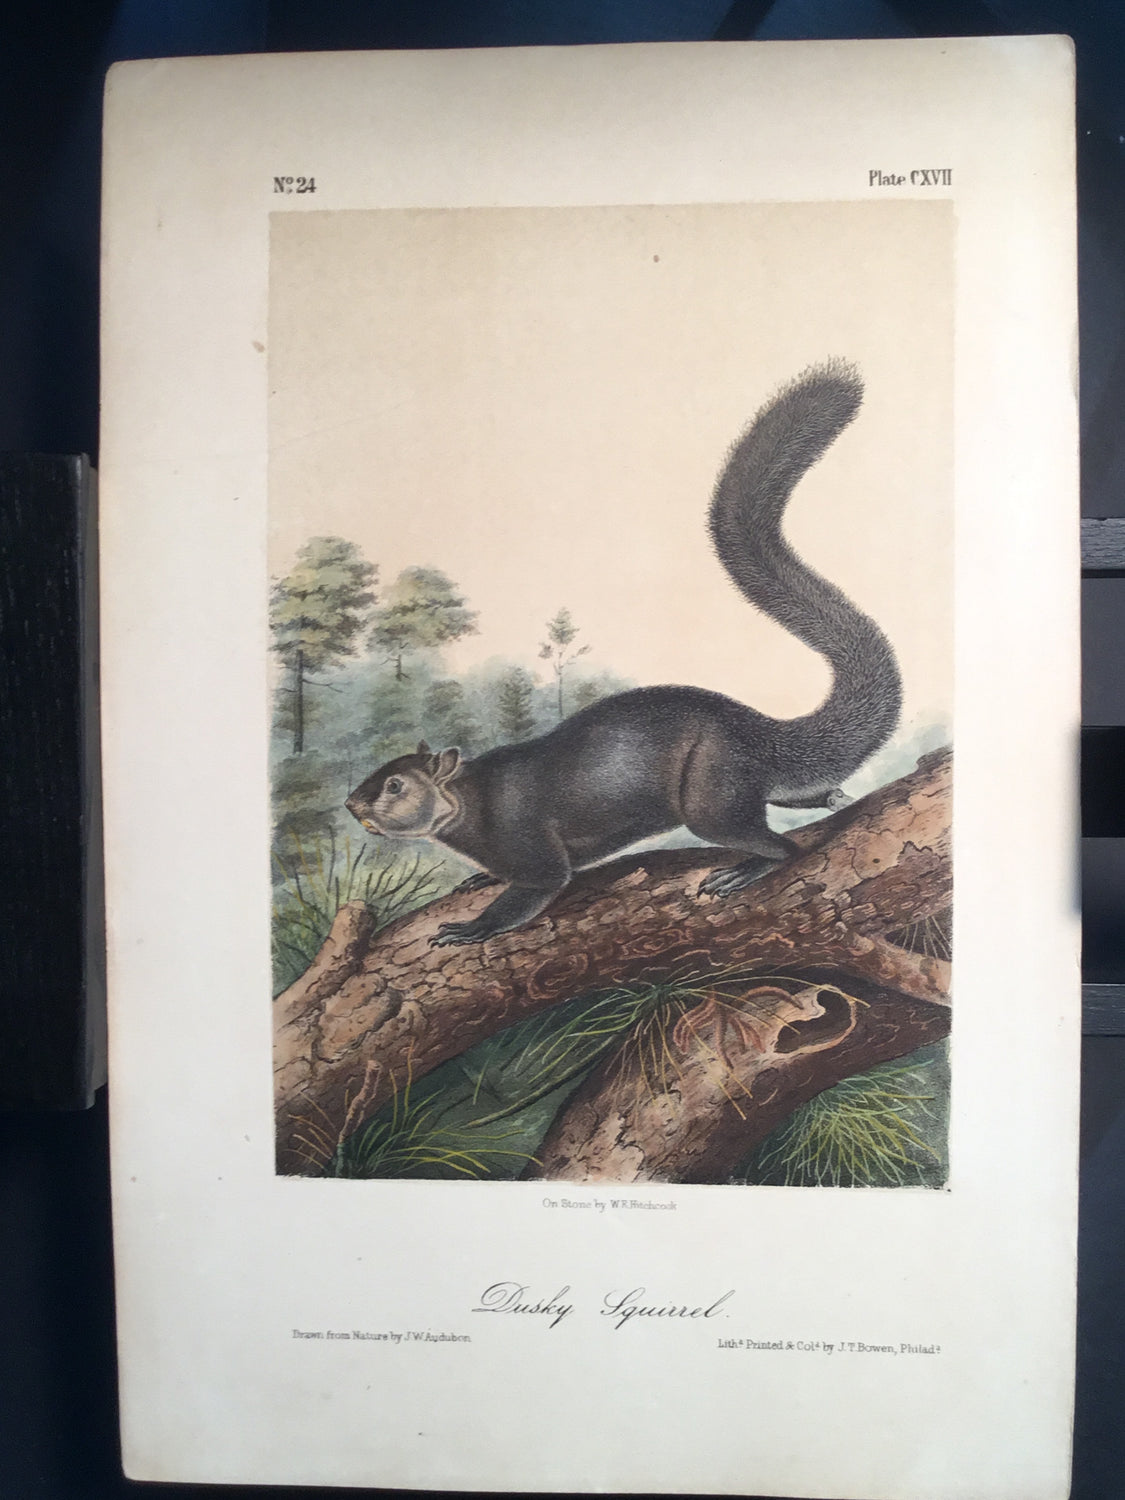 Lord-Hopkins Collection - Dusky Squirrel